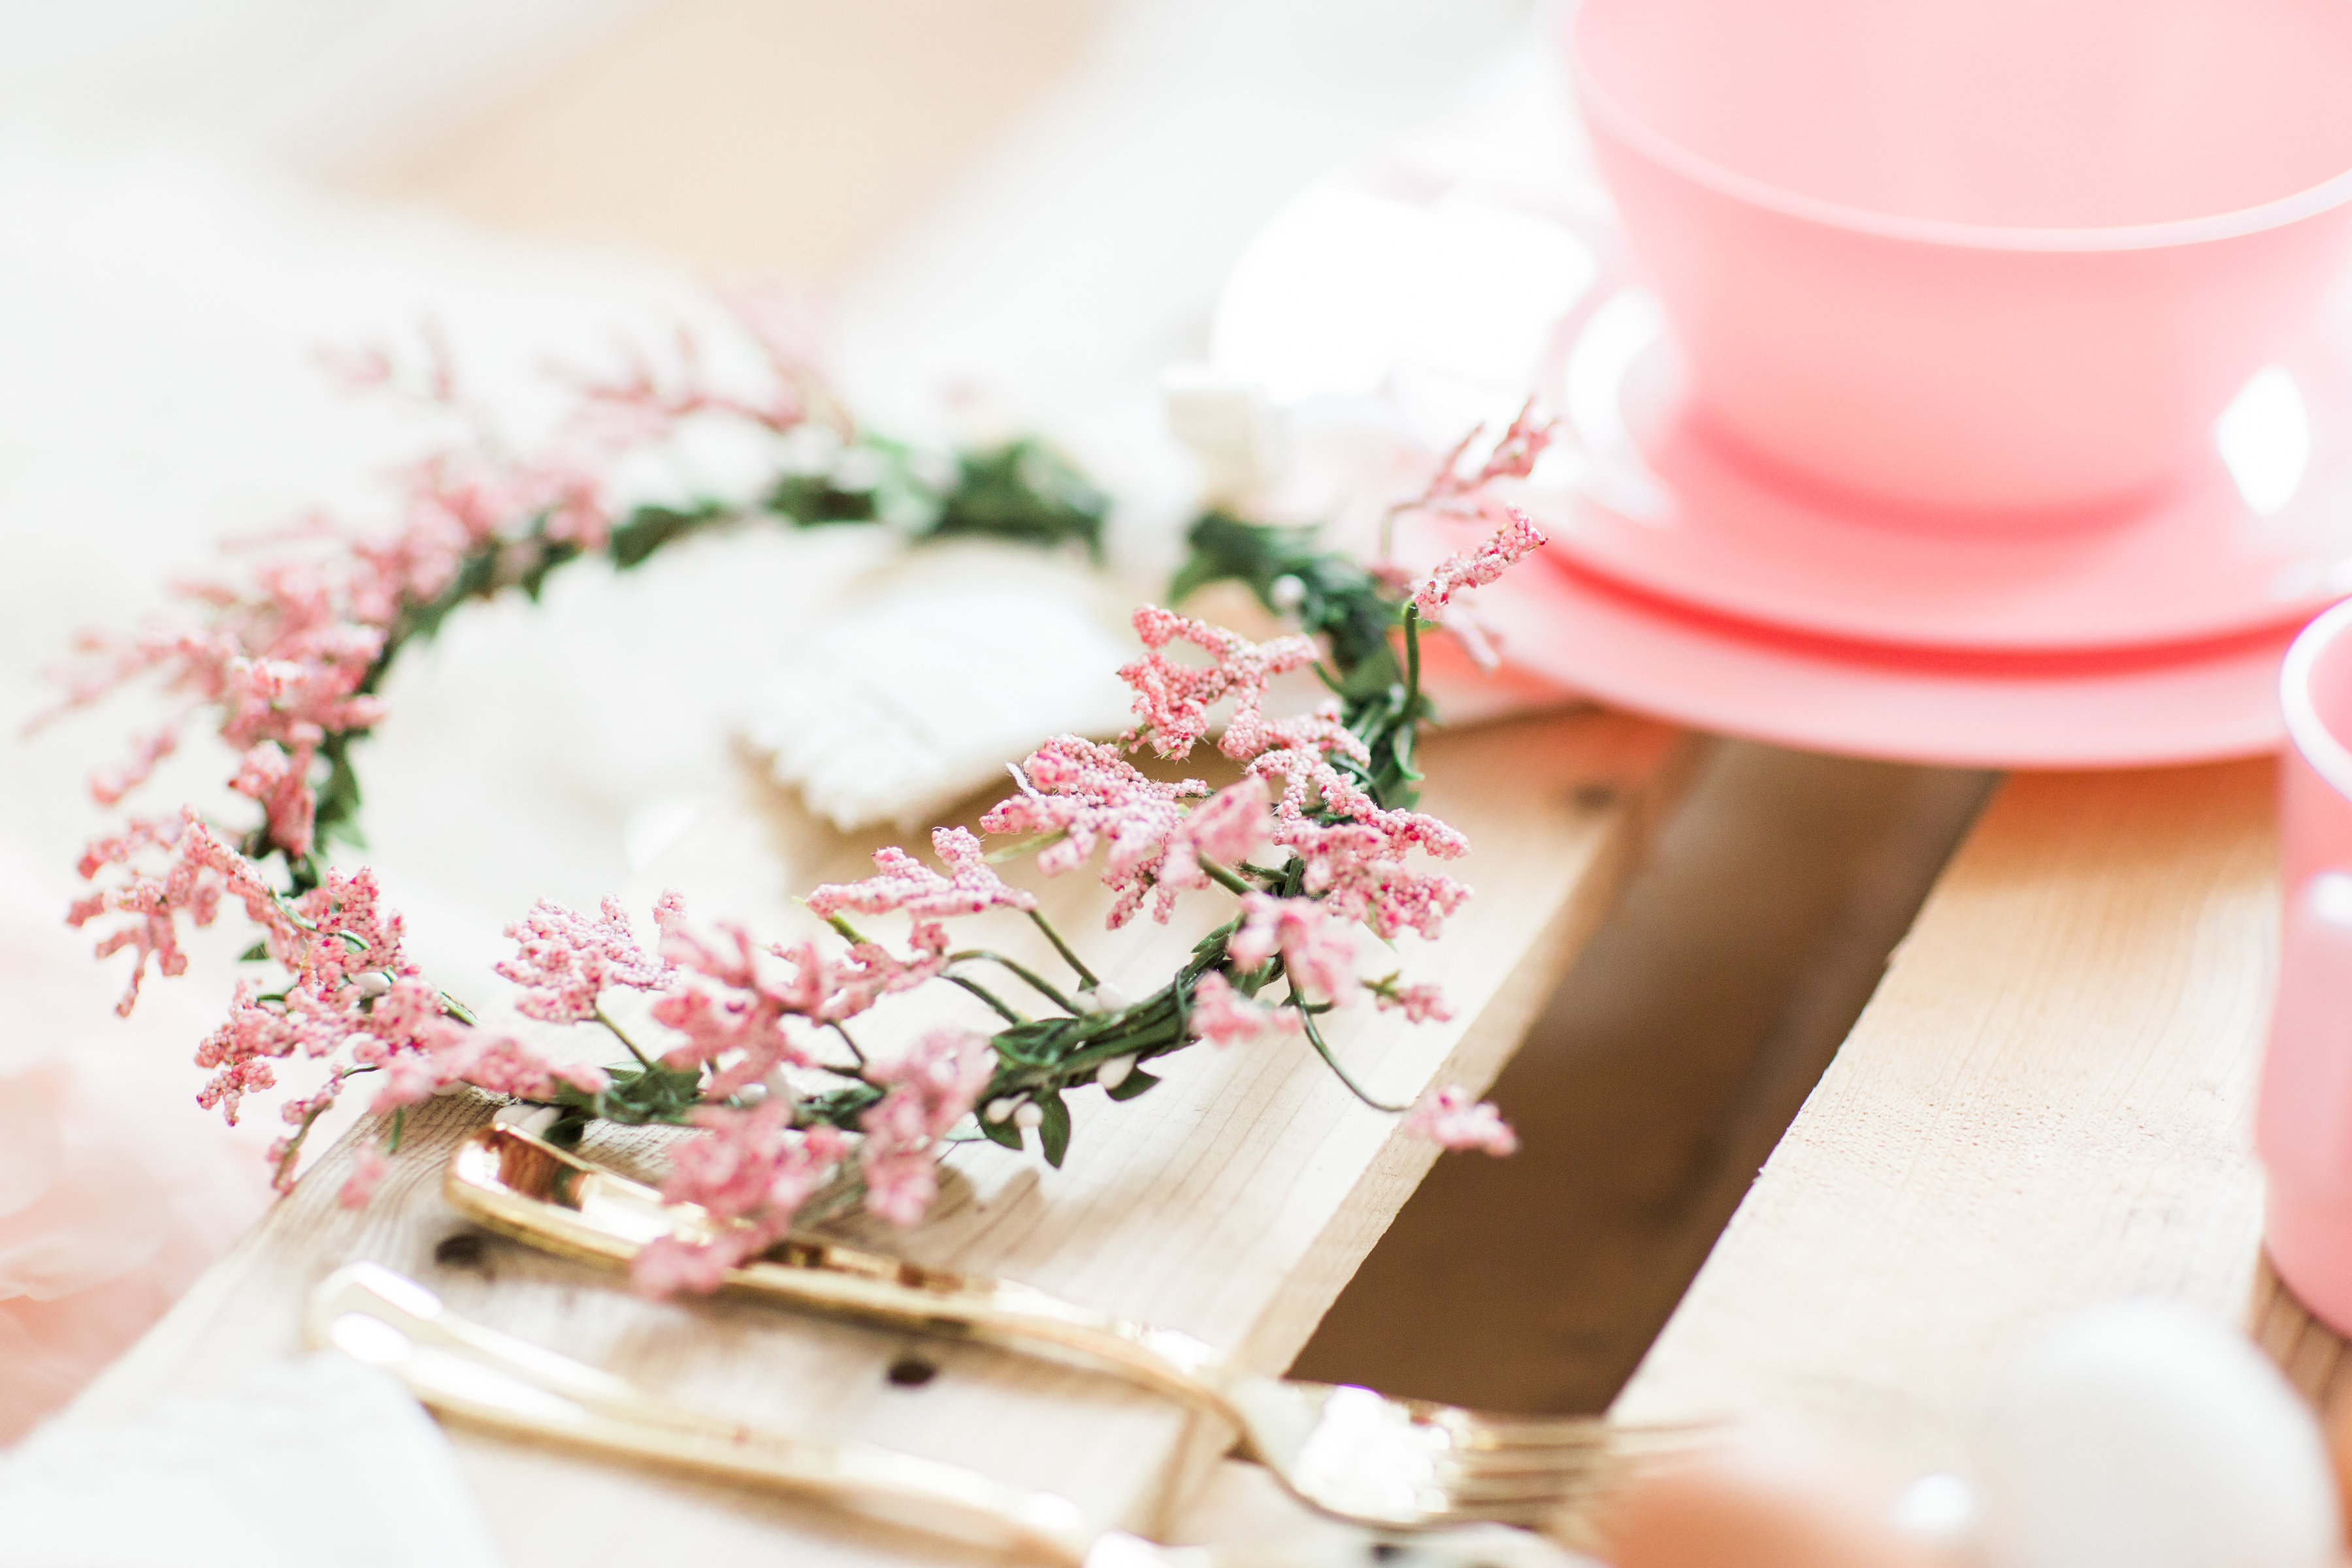 Looking for the sweetest Easter party for your little ones this Spring? This Some Bunny Loves You kids picnic Easter party has it all!   glitterinc.com   @glitterinc - Some Bunny Loves You Kids Picnic Easter Party by popular North Carolina lifestyle blogger Glitter, Inc.